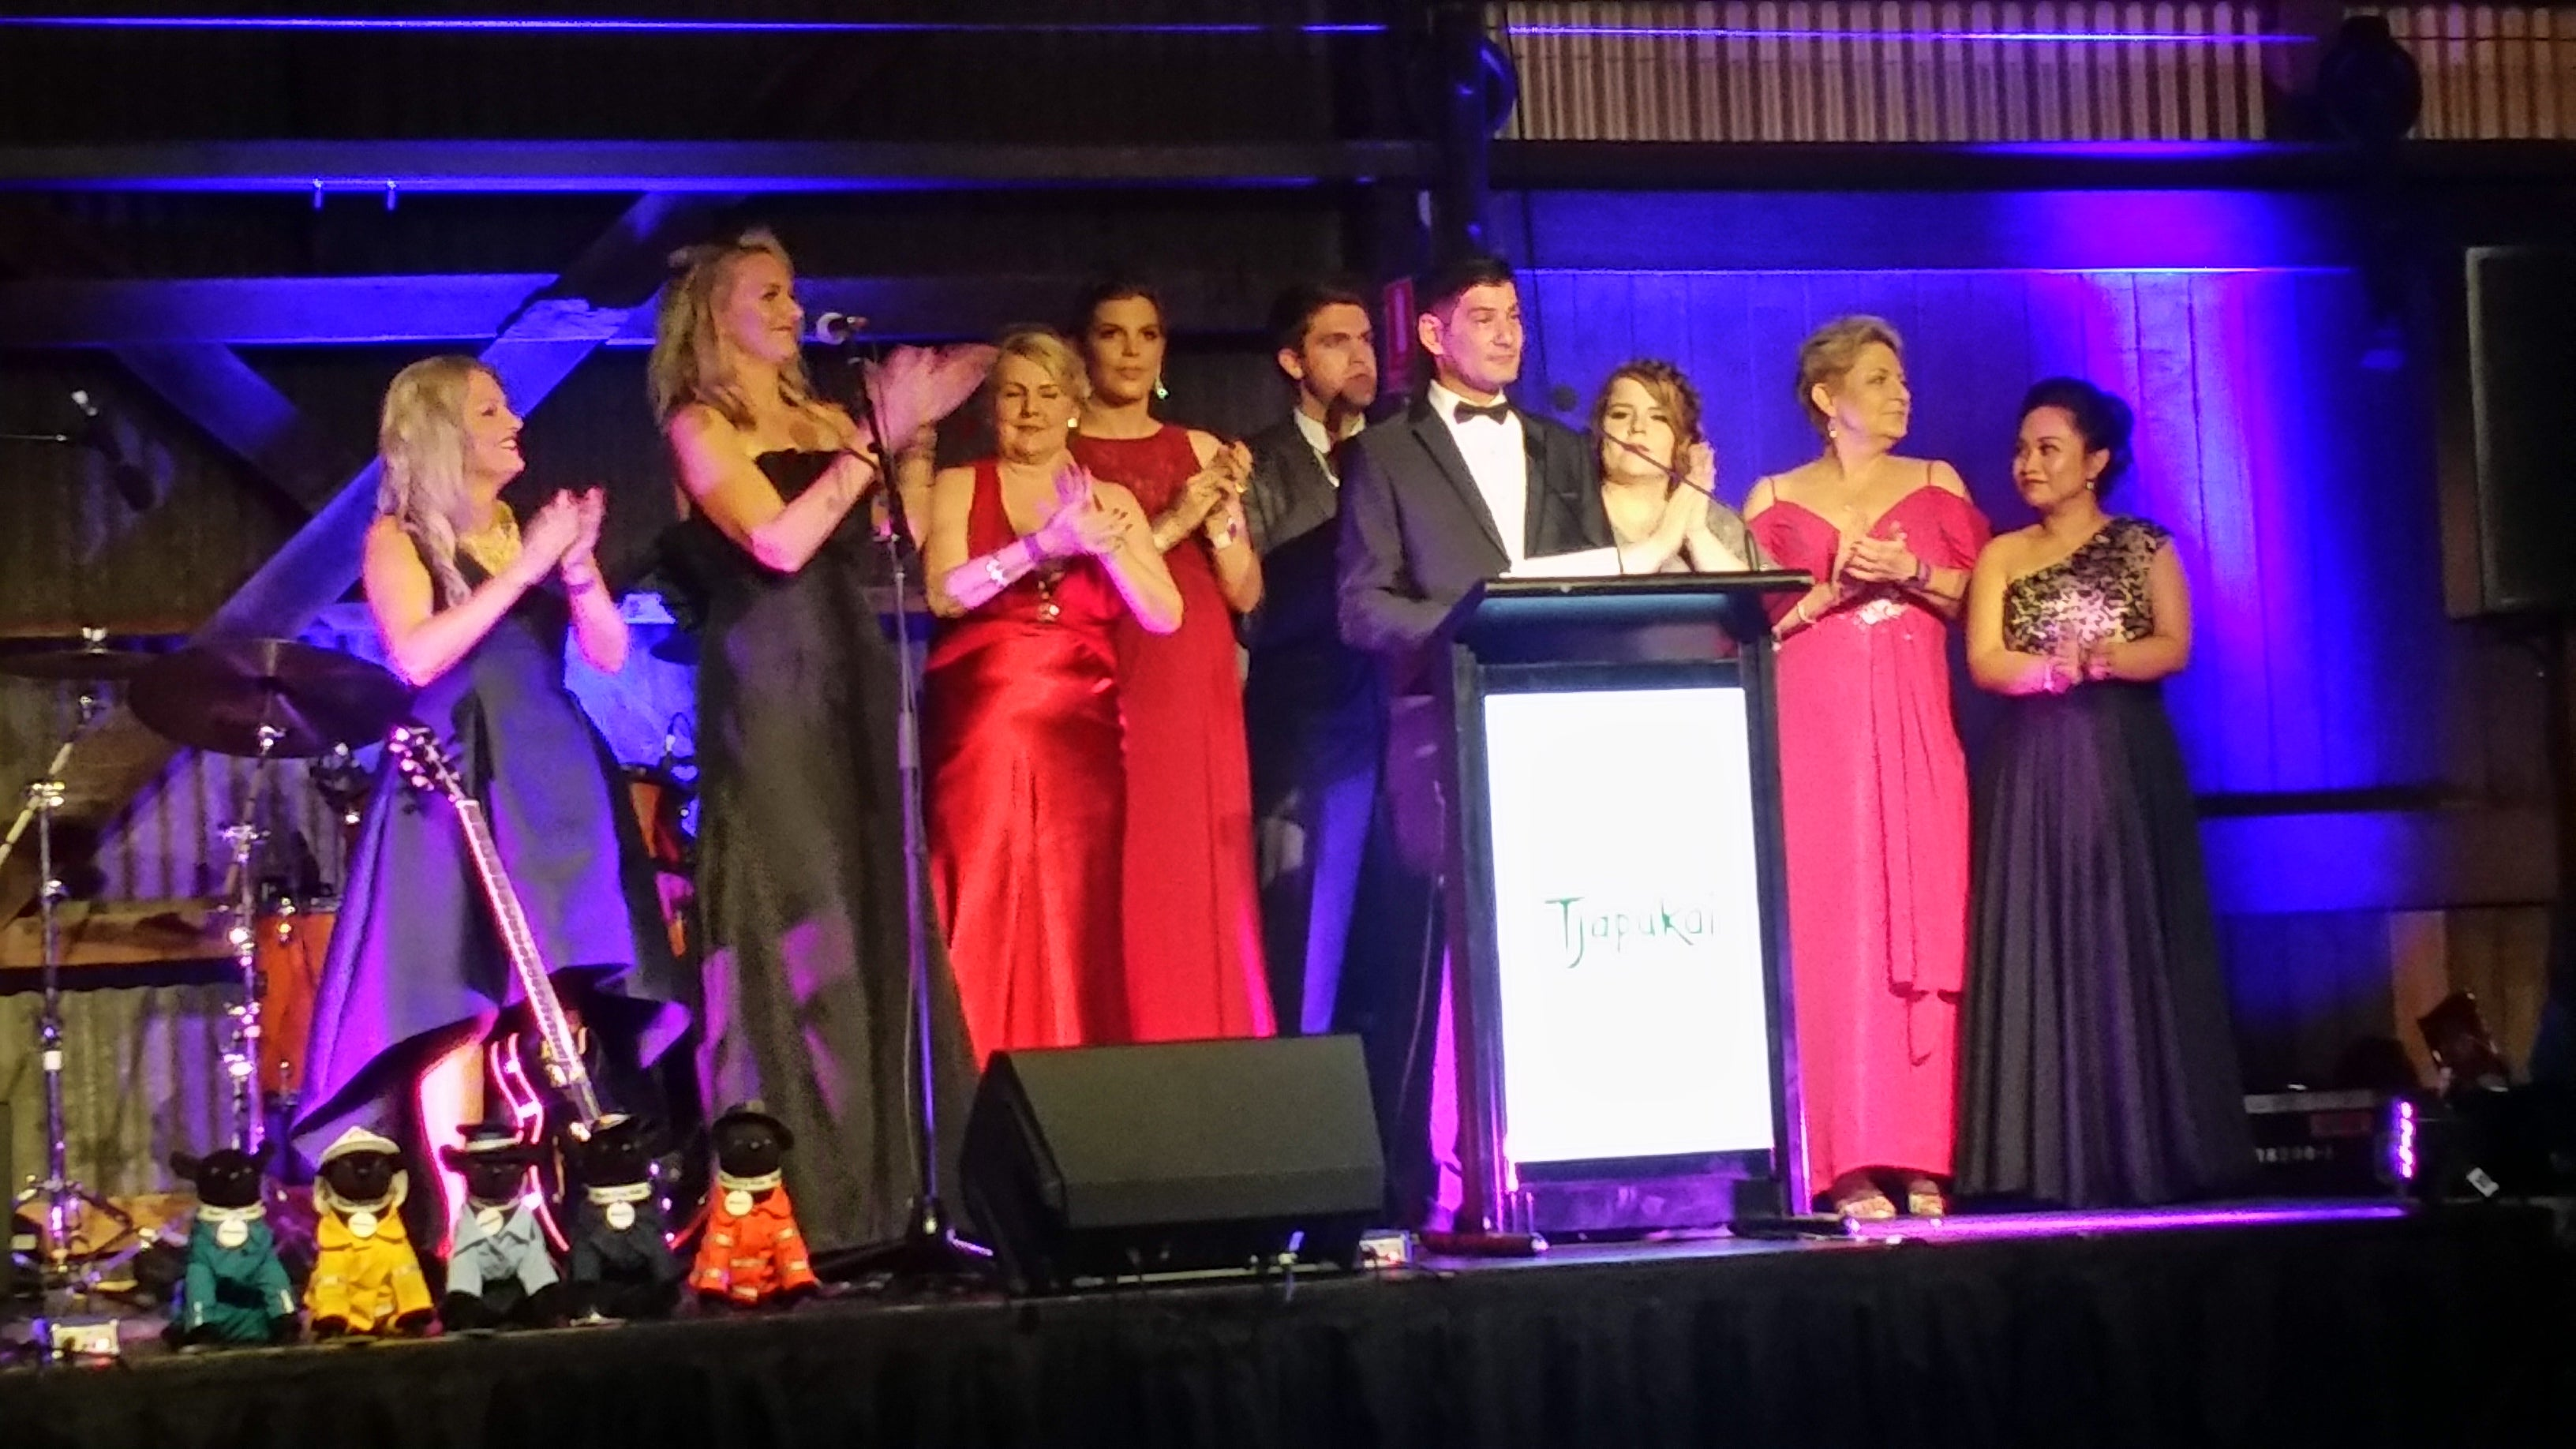 FNQ EMERGENCY SERVICES CHARITY BALL